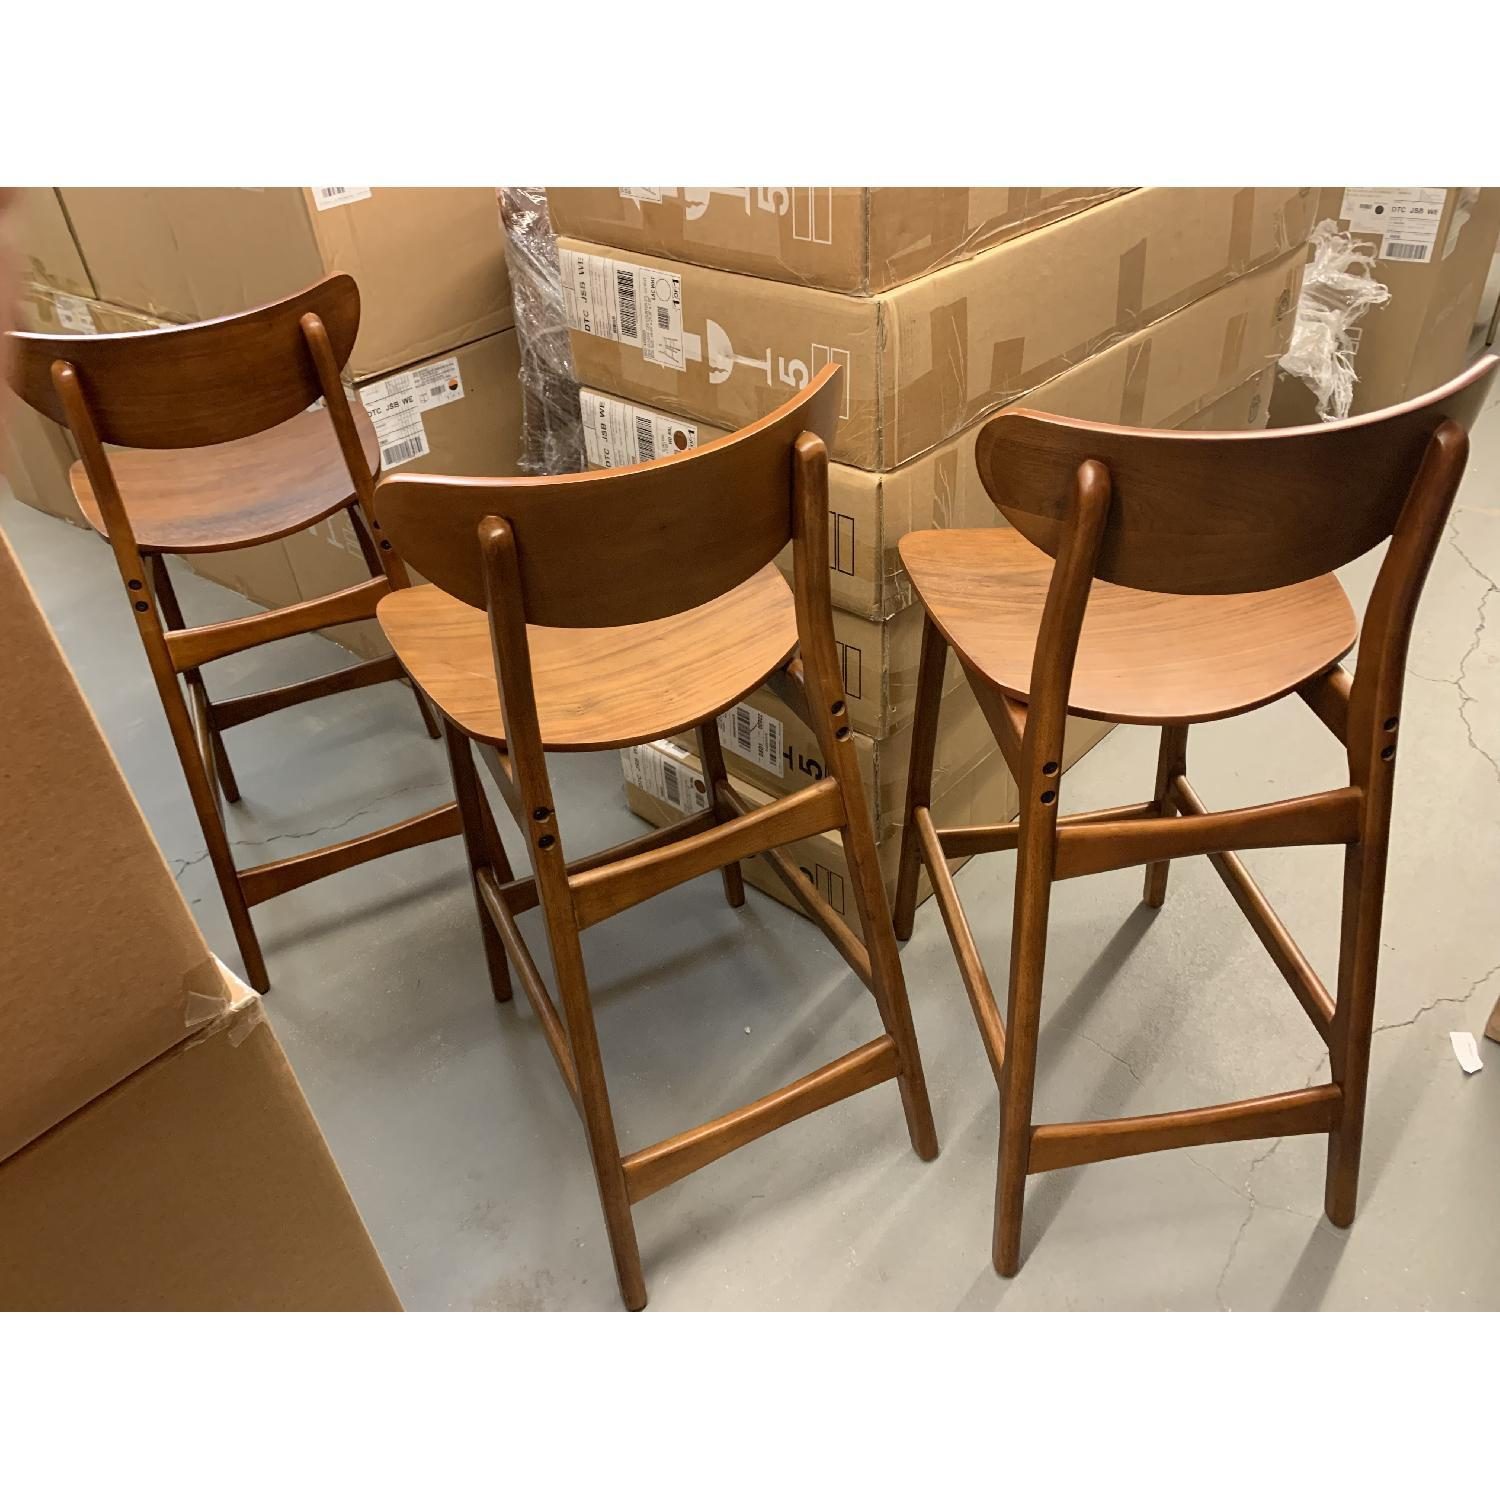 West Elm Classic Cafe Walnut Counter Stool - image-5